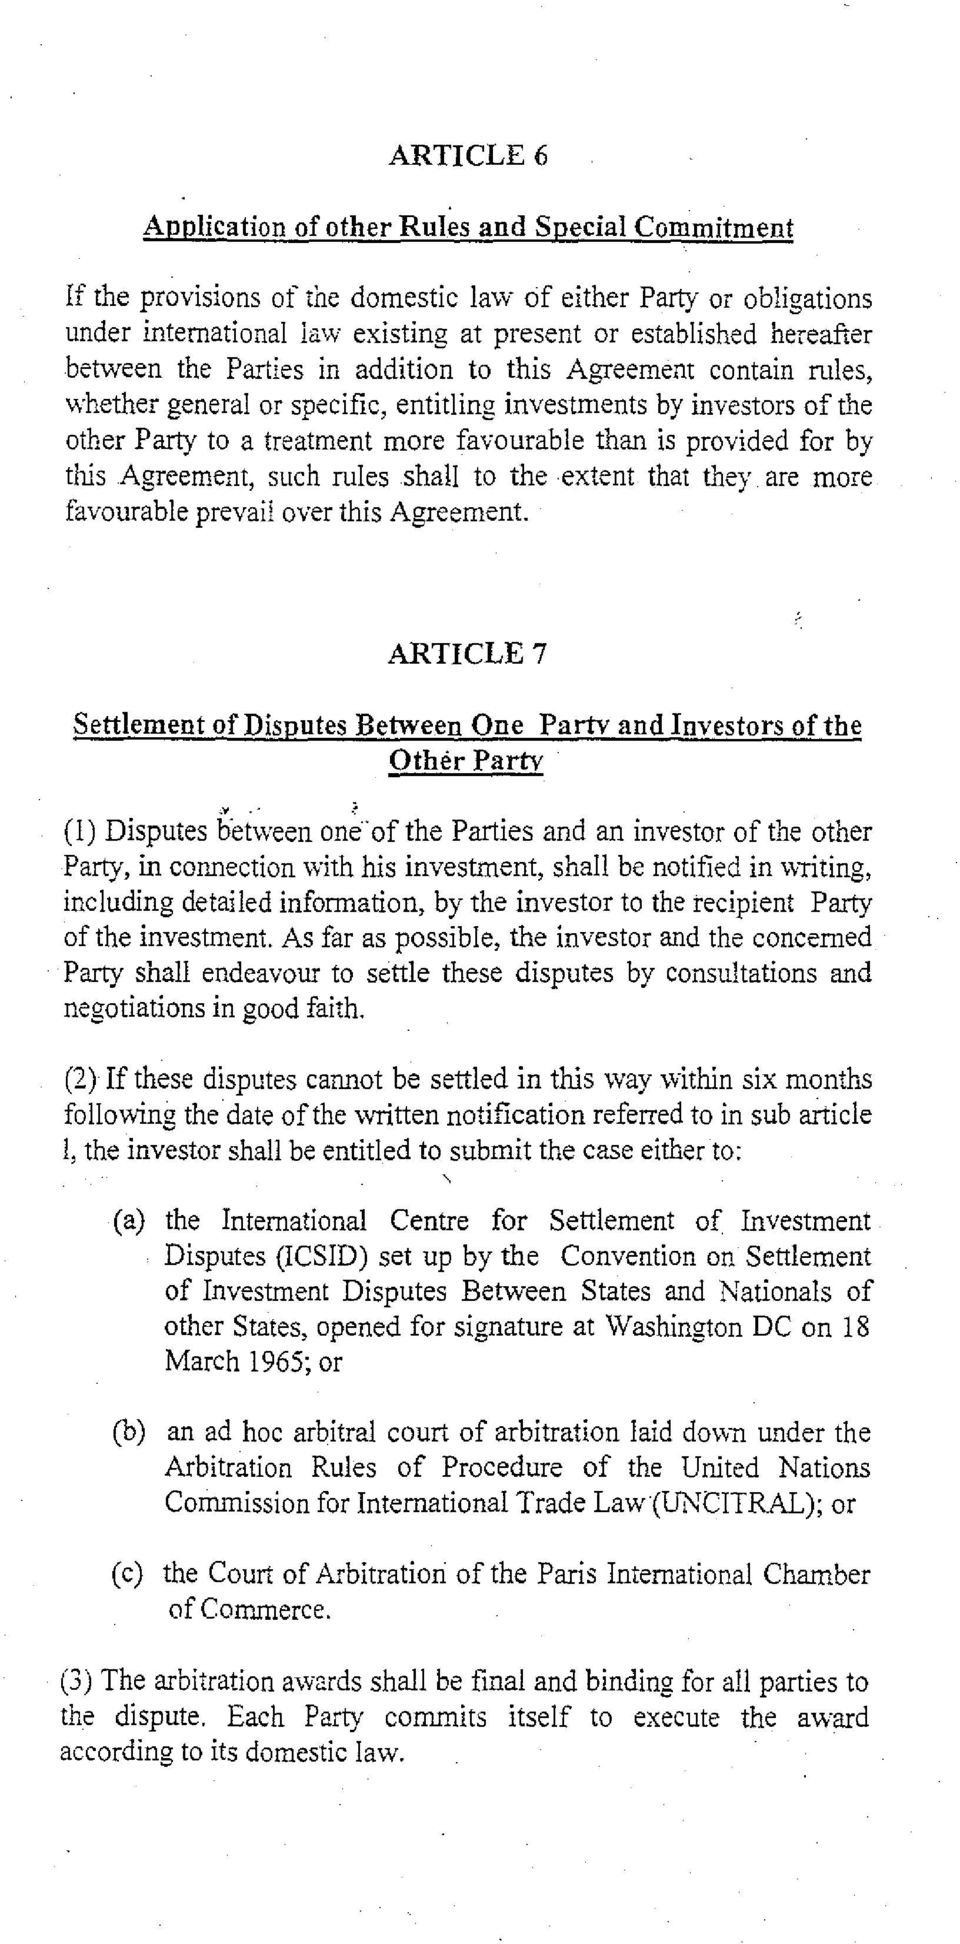 by this Agreement, such rules shall to the extent that they are more favourable prevail over this Agreement. ARTICLE?